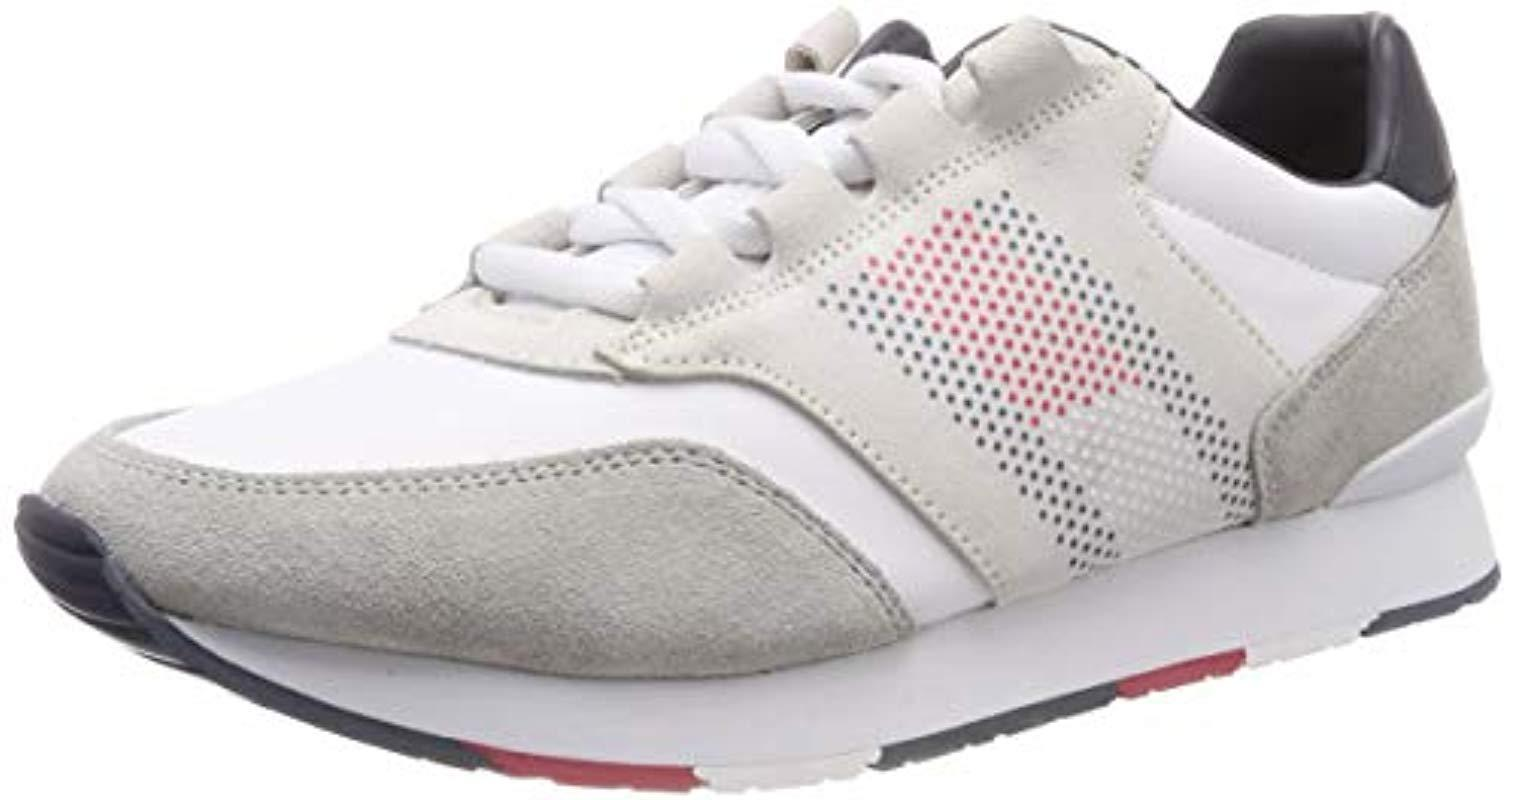 389bb3fb Tommy Hilfiger Corporate Material Mix Runner, 's Low-top Sneakers in ...